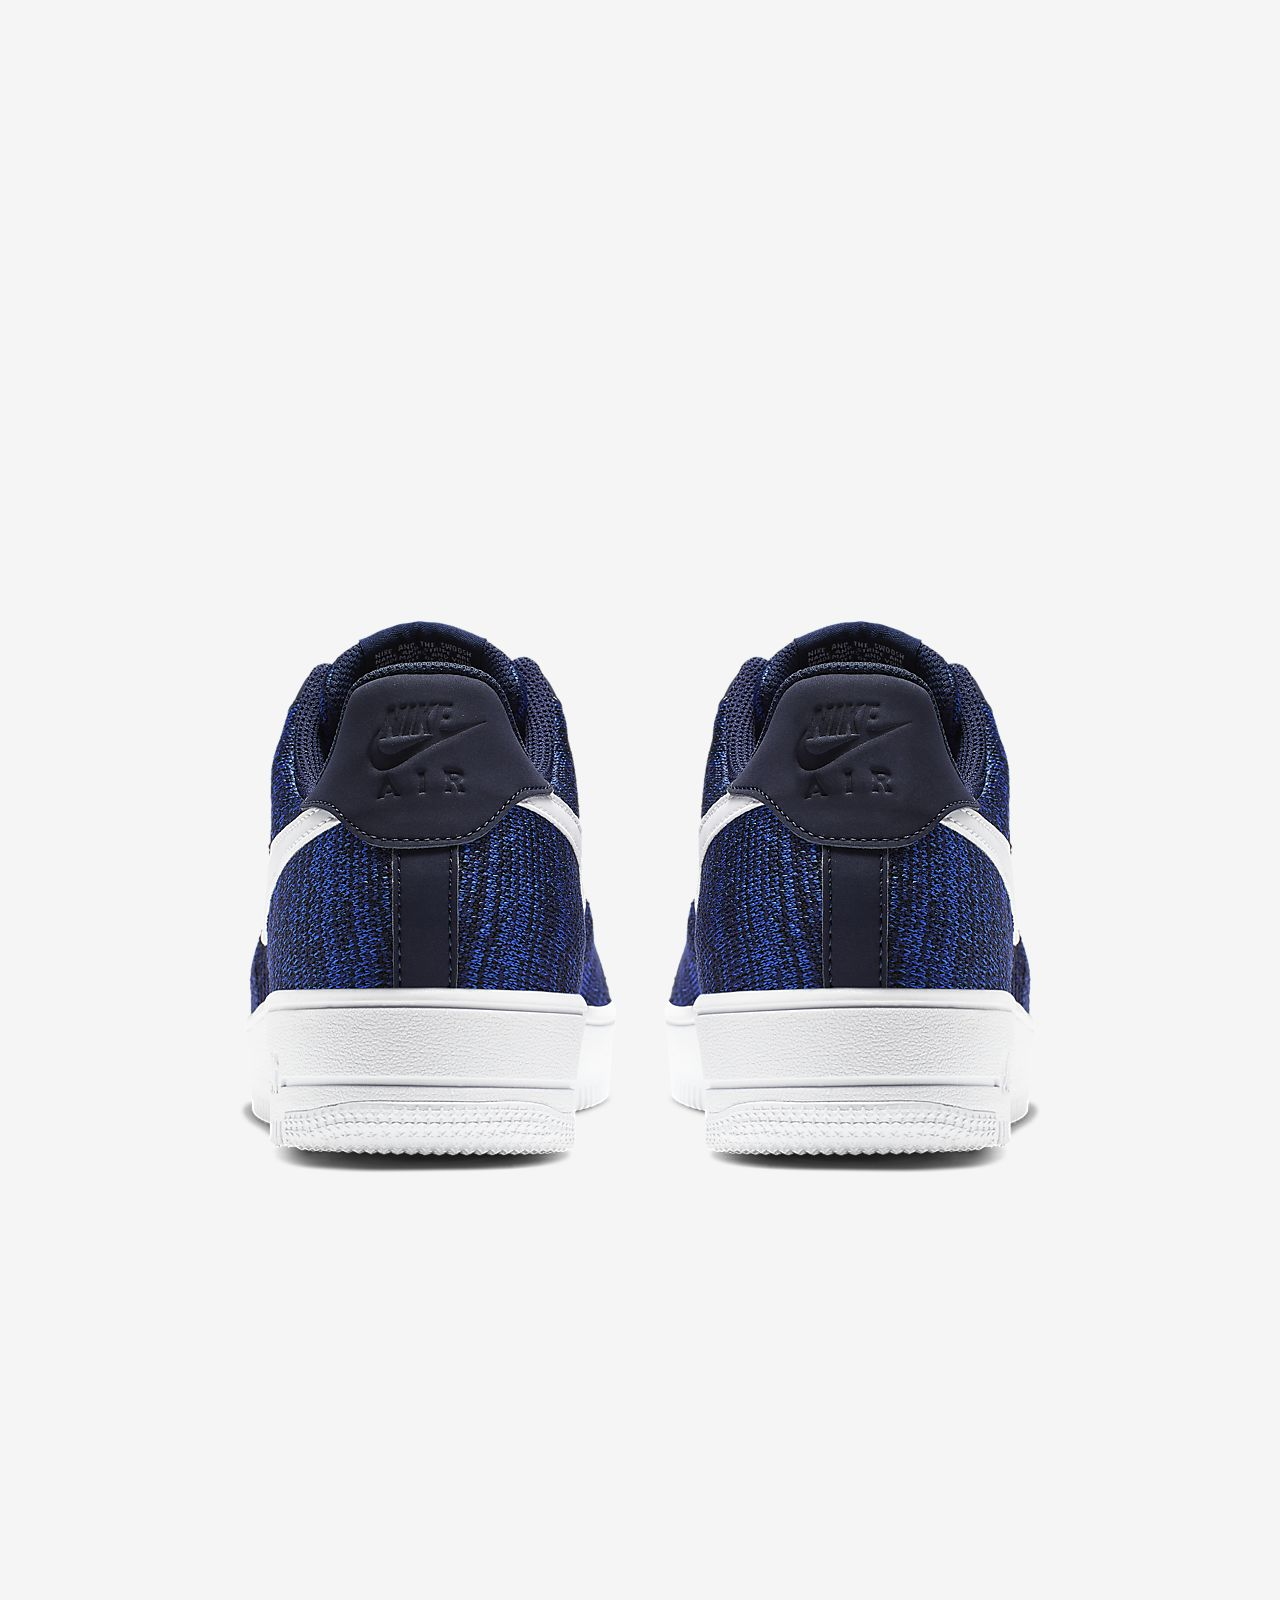 Flyknit Chaussure Air Force 1 Nike 0 2 8nwXP0Ok